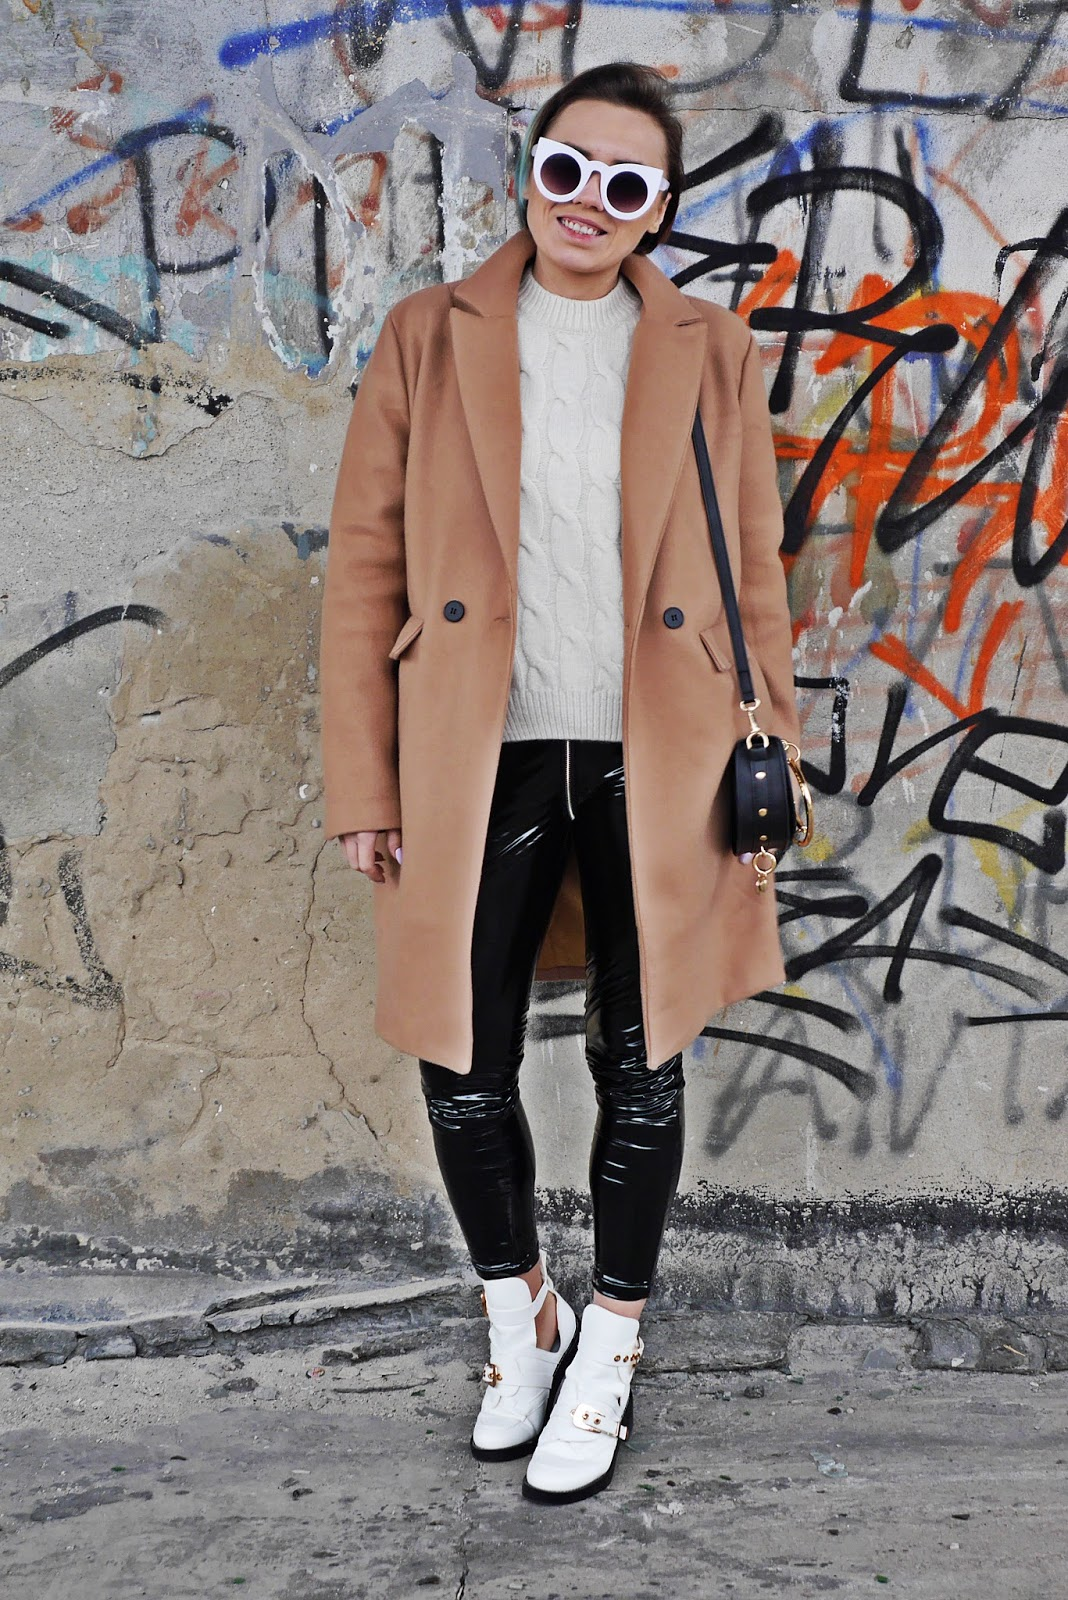 baige coat binyl pants outfit balanciaga cut out shoes karyn blog modowy